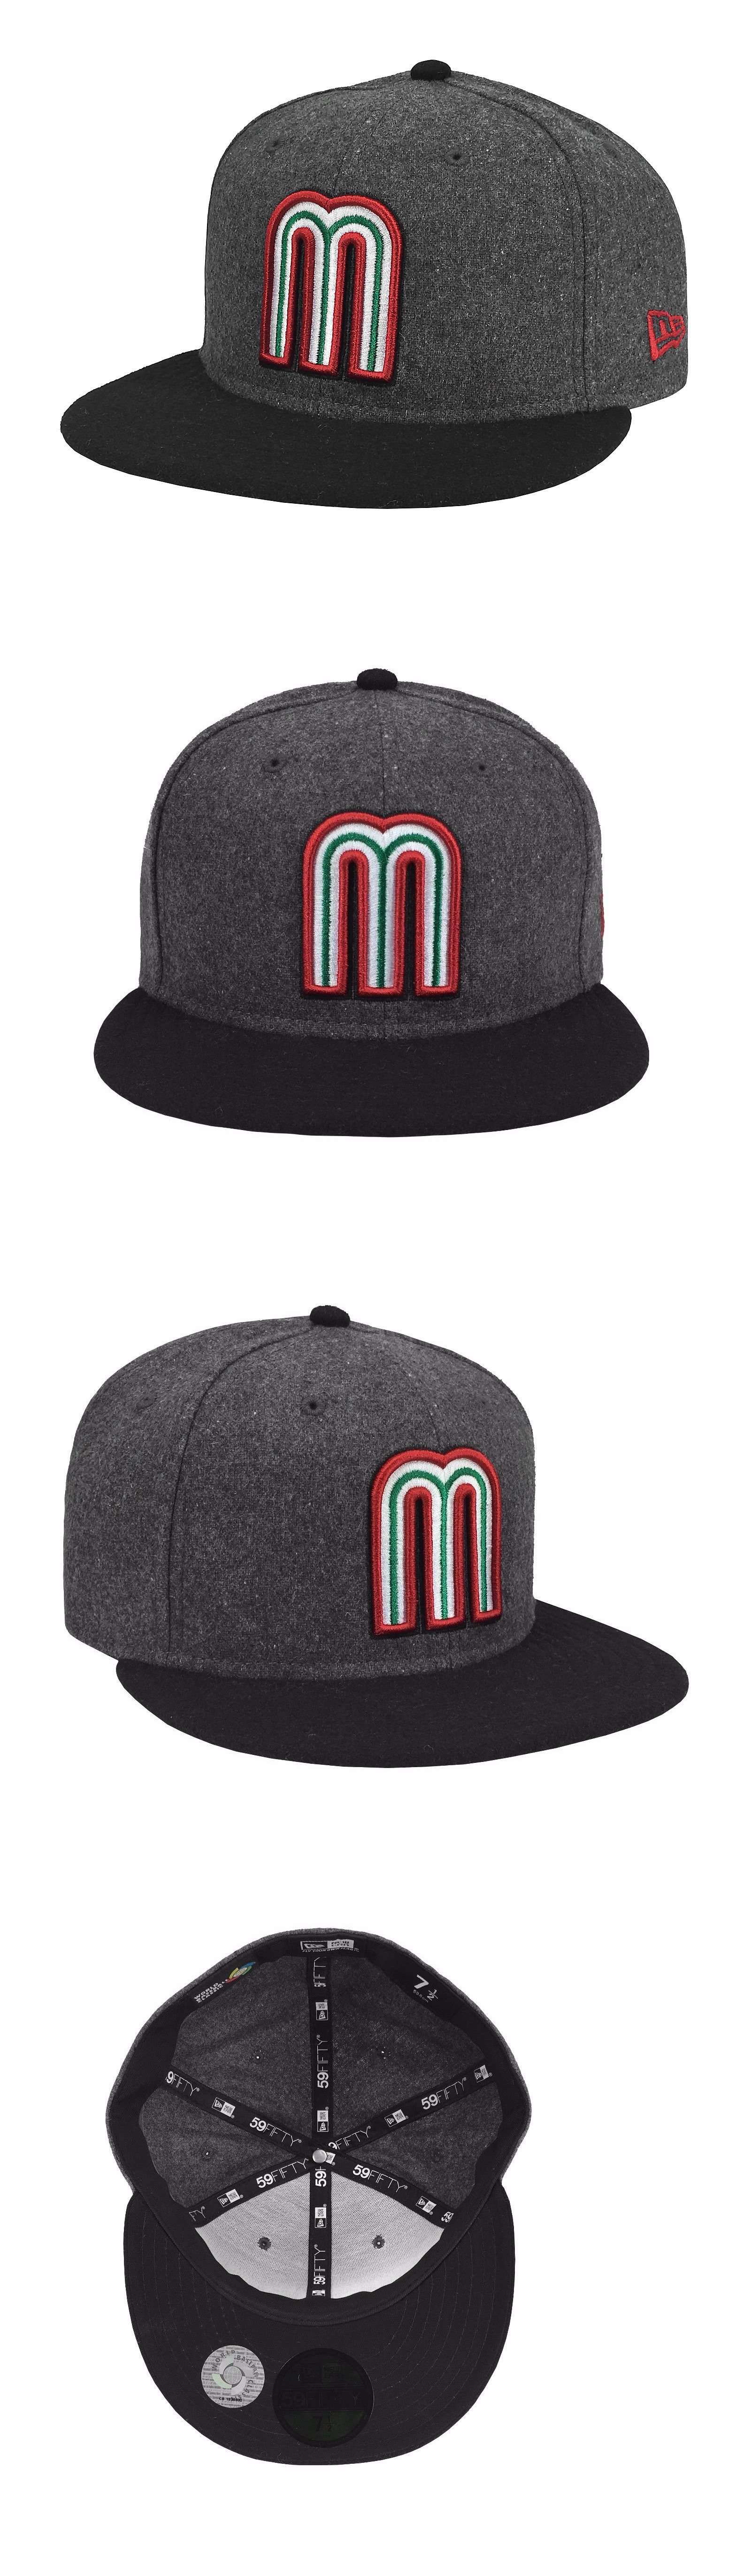 New Era 59Fifty Mens Cap Mexico World Baseball Classic Fitted Hat Gray Black Red